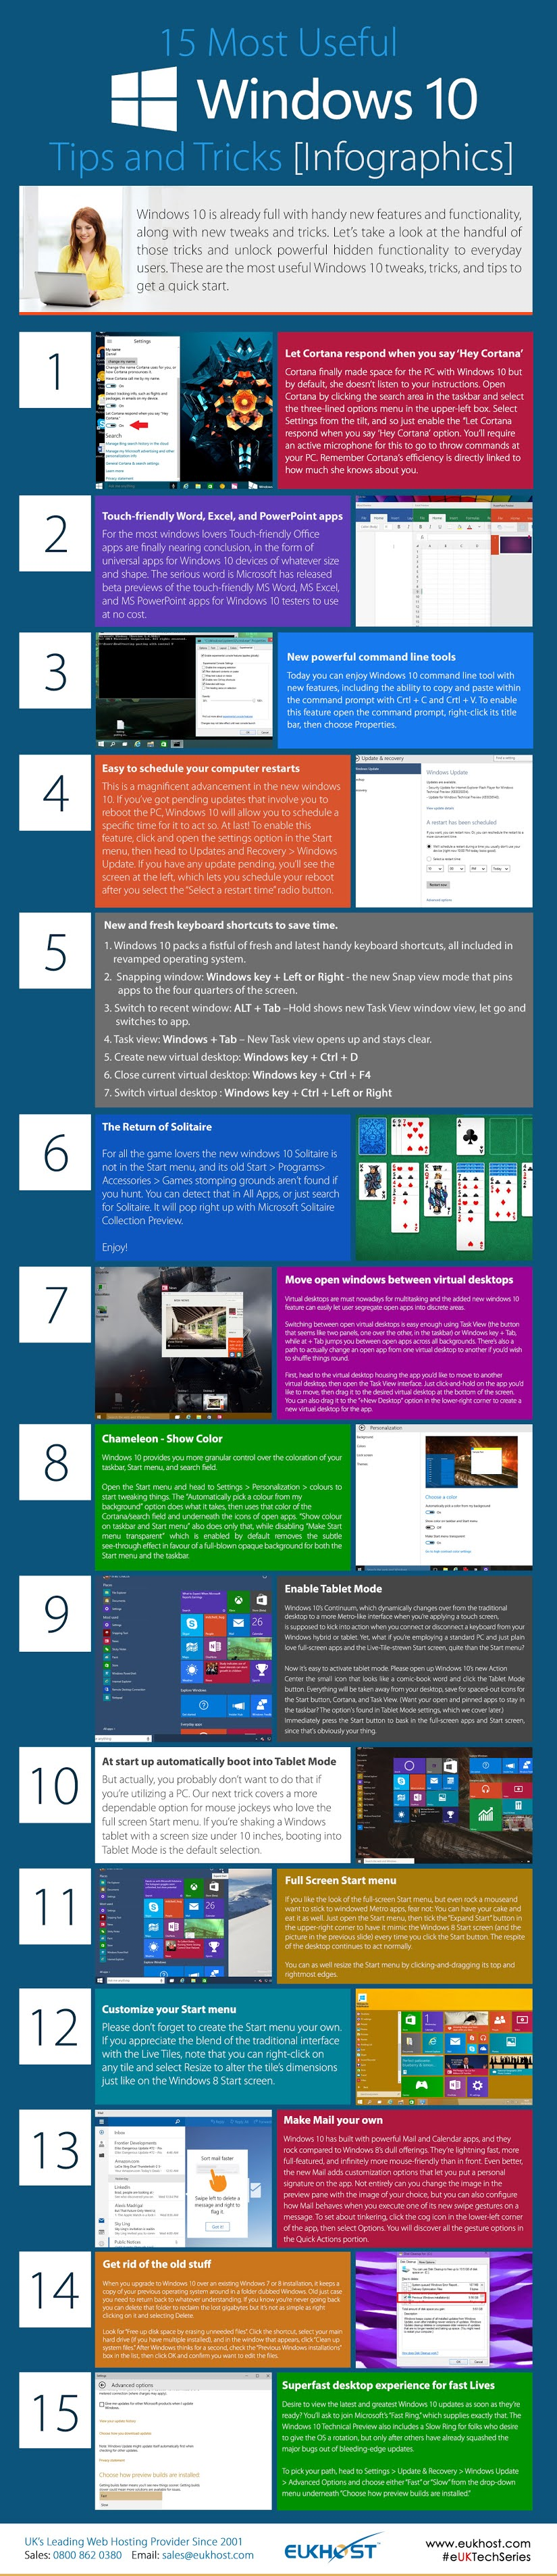 15 Most Useful Windows 10 Tips and Tricks #infographic #Window #Windows10 #infographics #Windows10 Tips #Windows Tricks